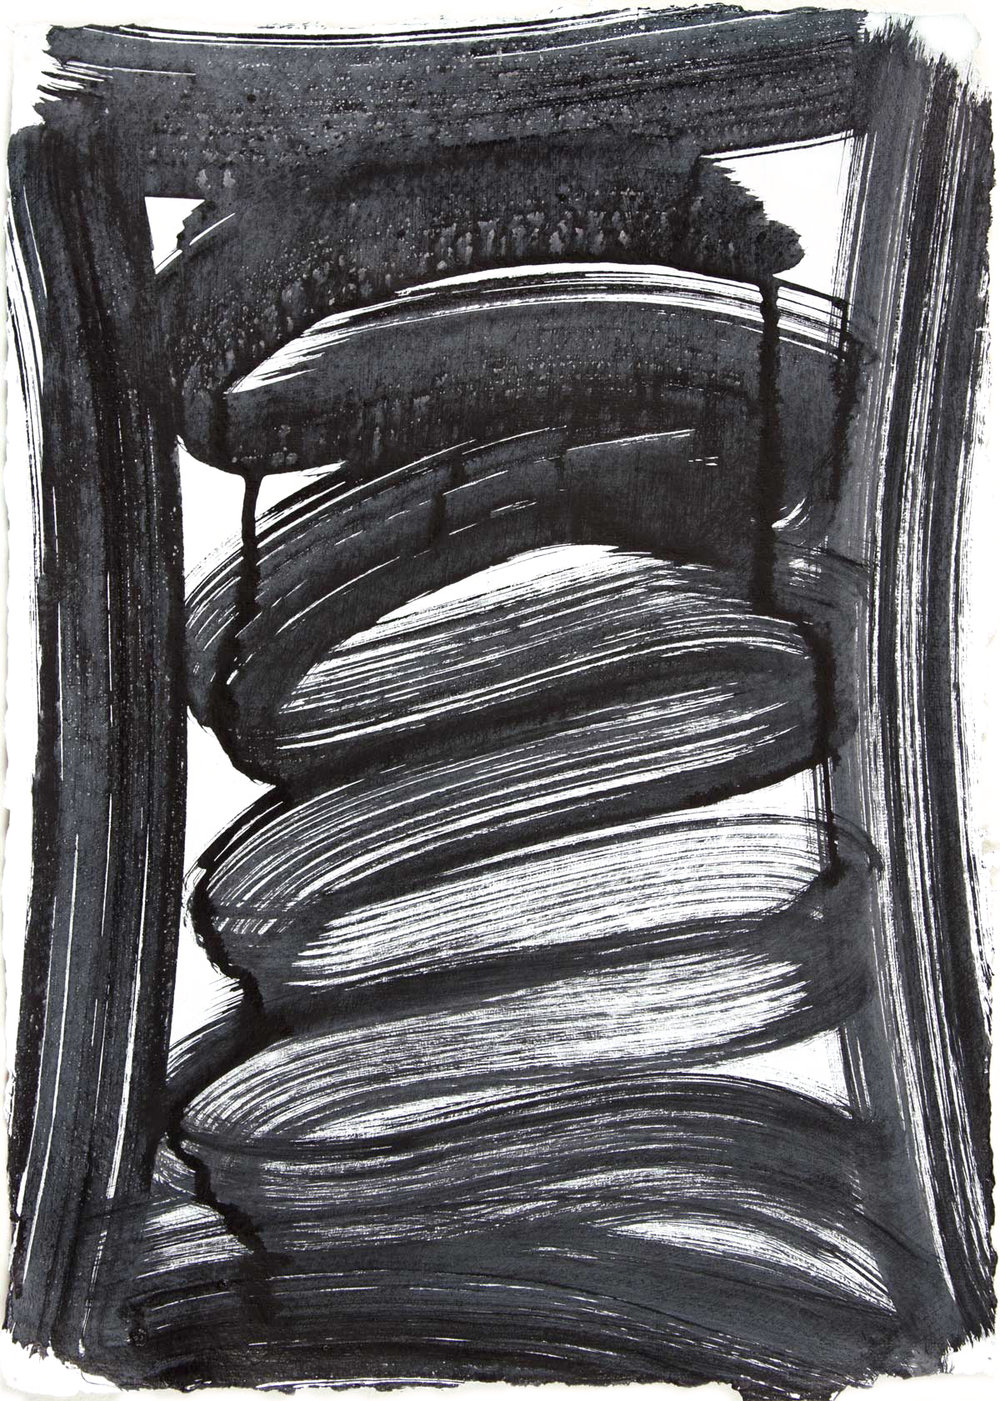 Vault 4 , 2015 Sumi ink on paper 16.5 x 11.75 in.